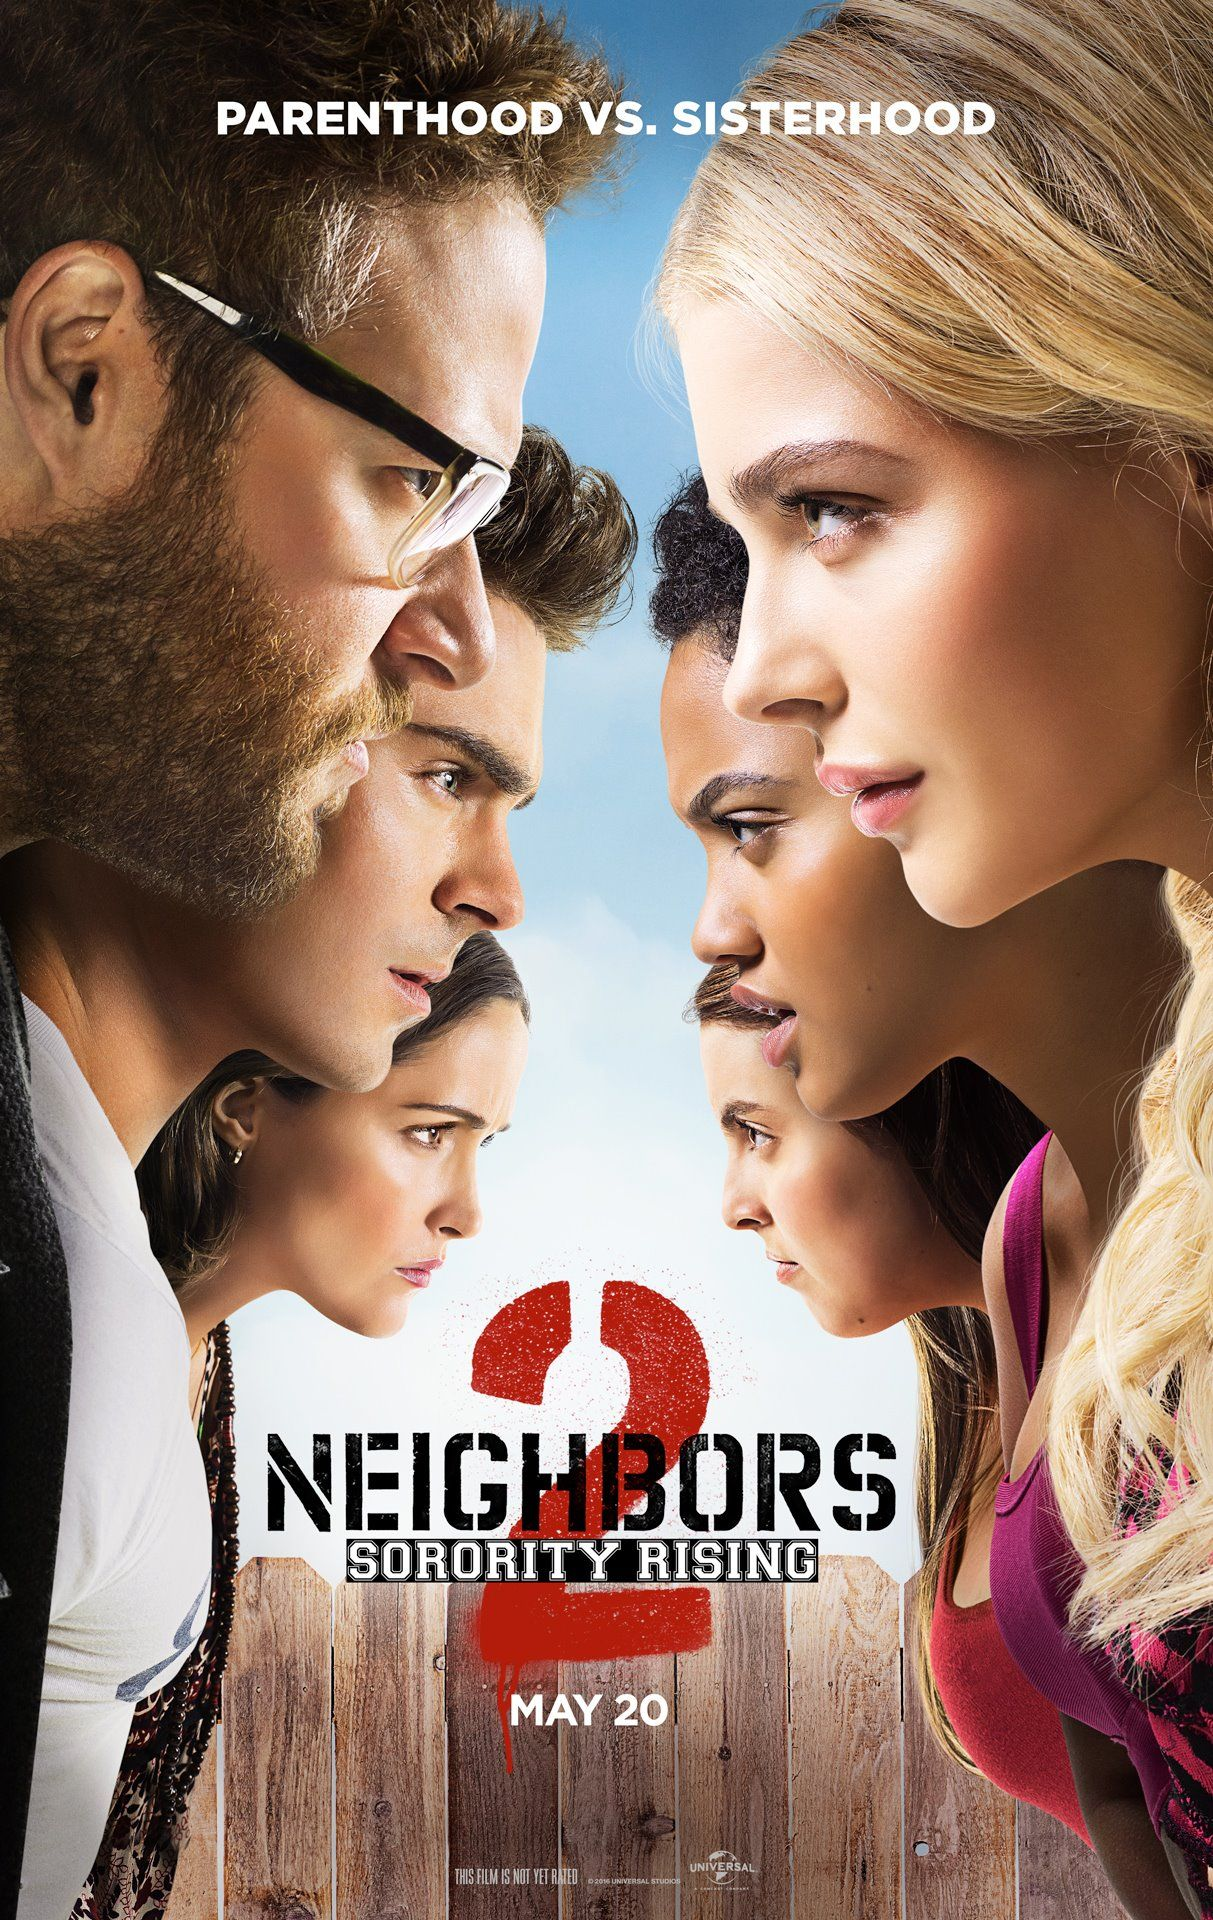 You Simply Don T Want This Sorority House For Your Neighbors Free Movies Online Bad Neighbors 2 Movie